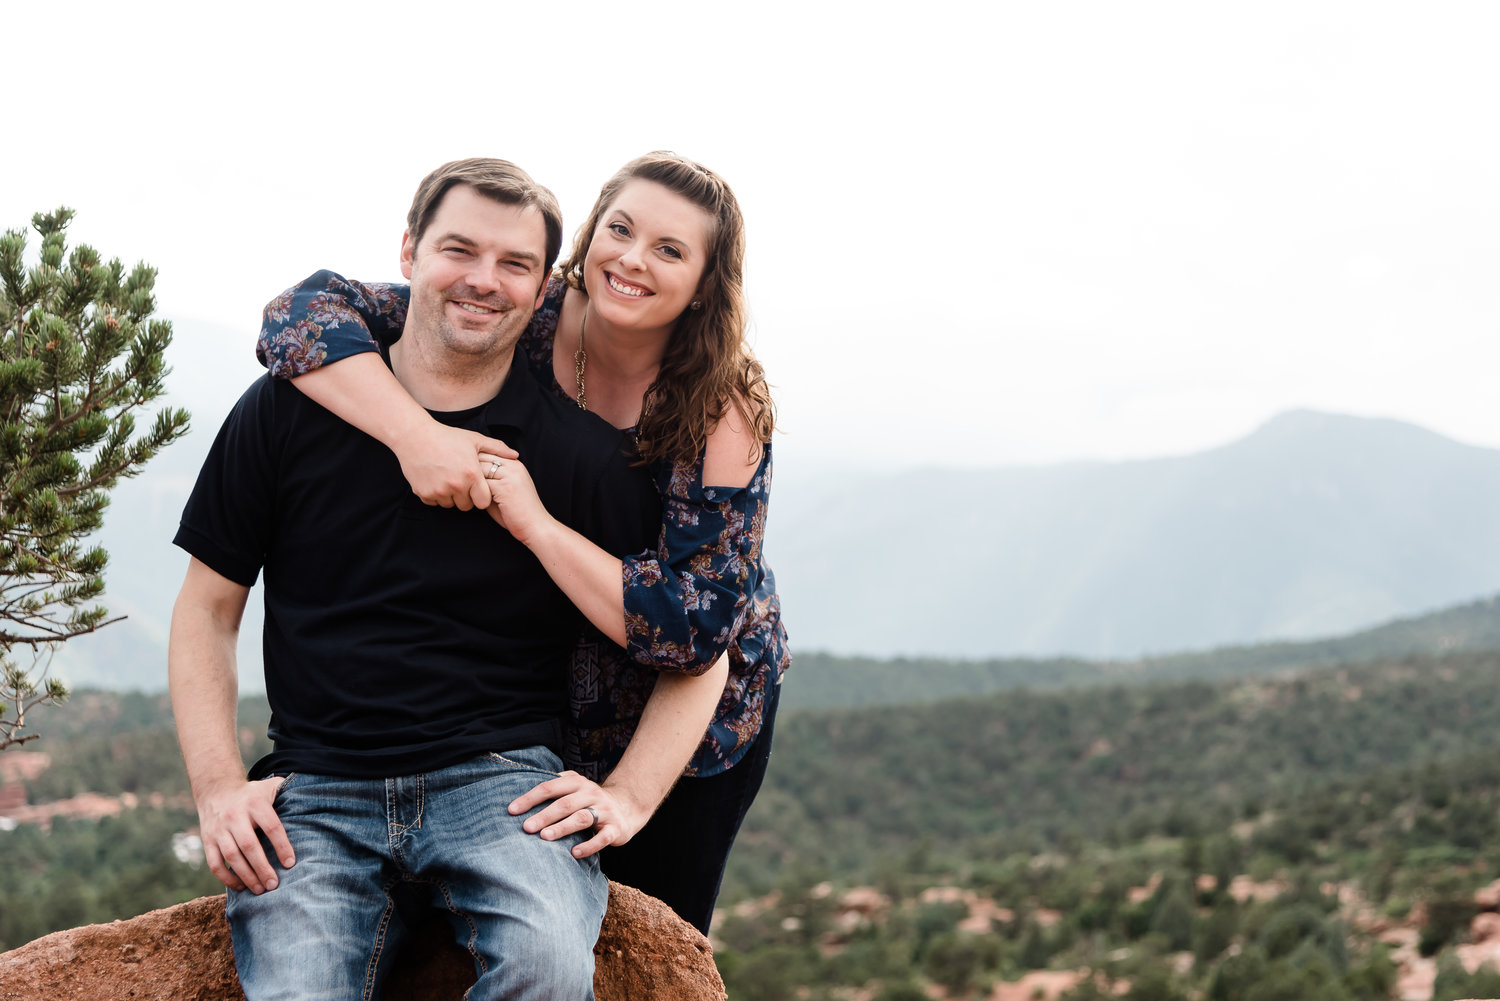 Thank you so much for contacting us about your upcoming wedding / elopement! -